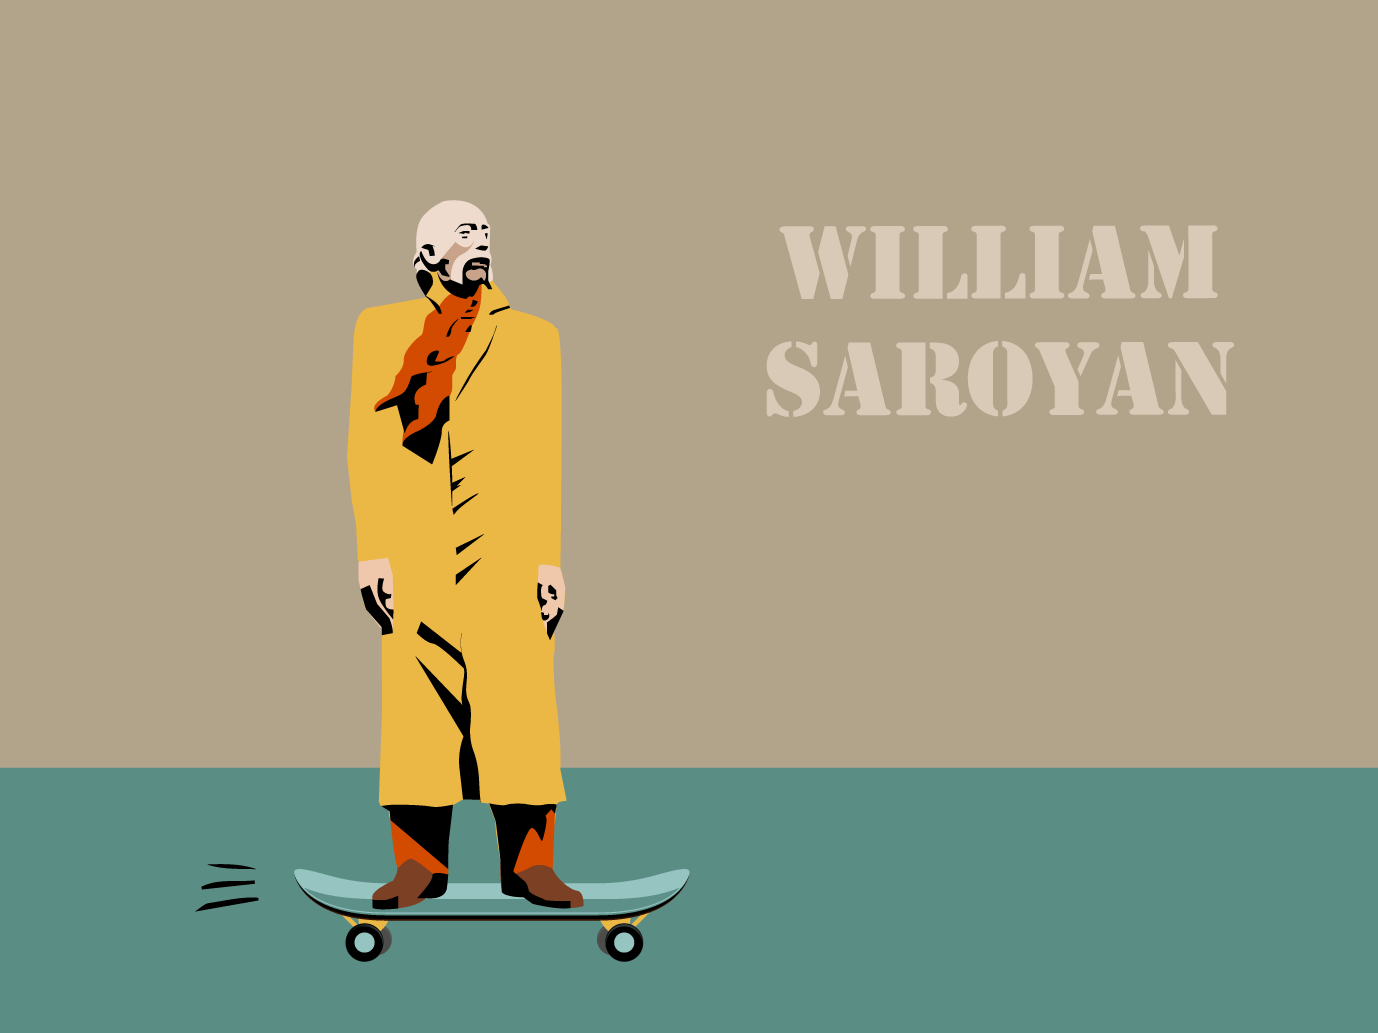 William Saroyan | Armenian intellectuals role pIaying skating skateboard skater william saroyan sculpture yerevan armenia vector illustration graphic design